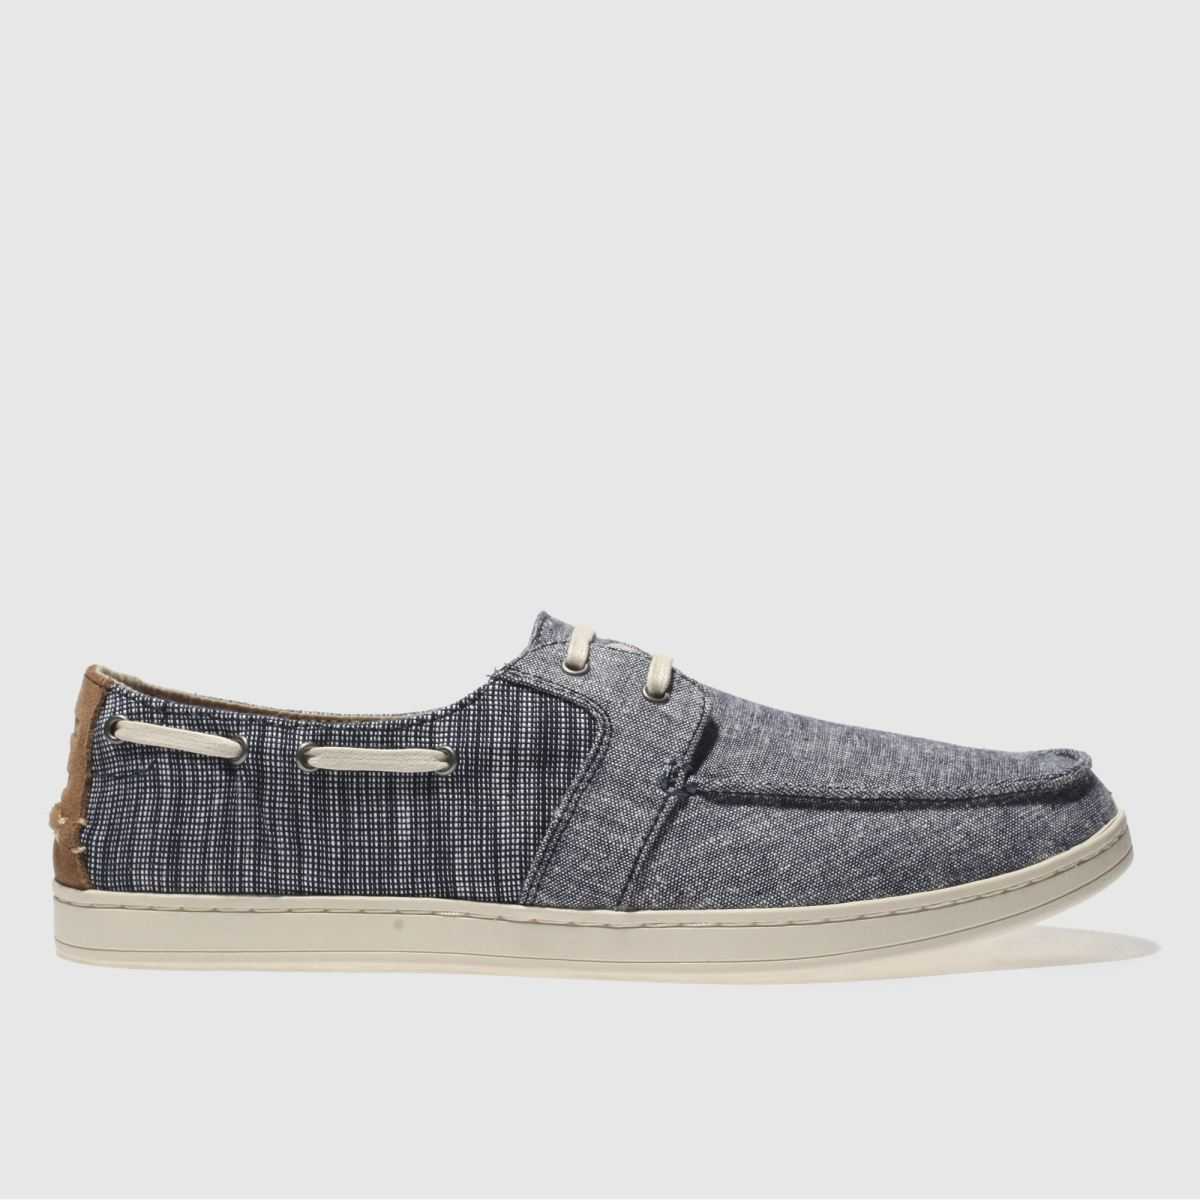 Toms Navy & White Culver Lace Up Shoes